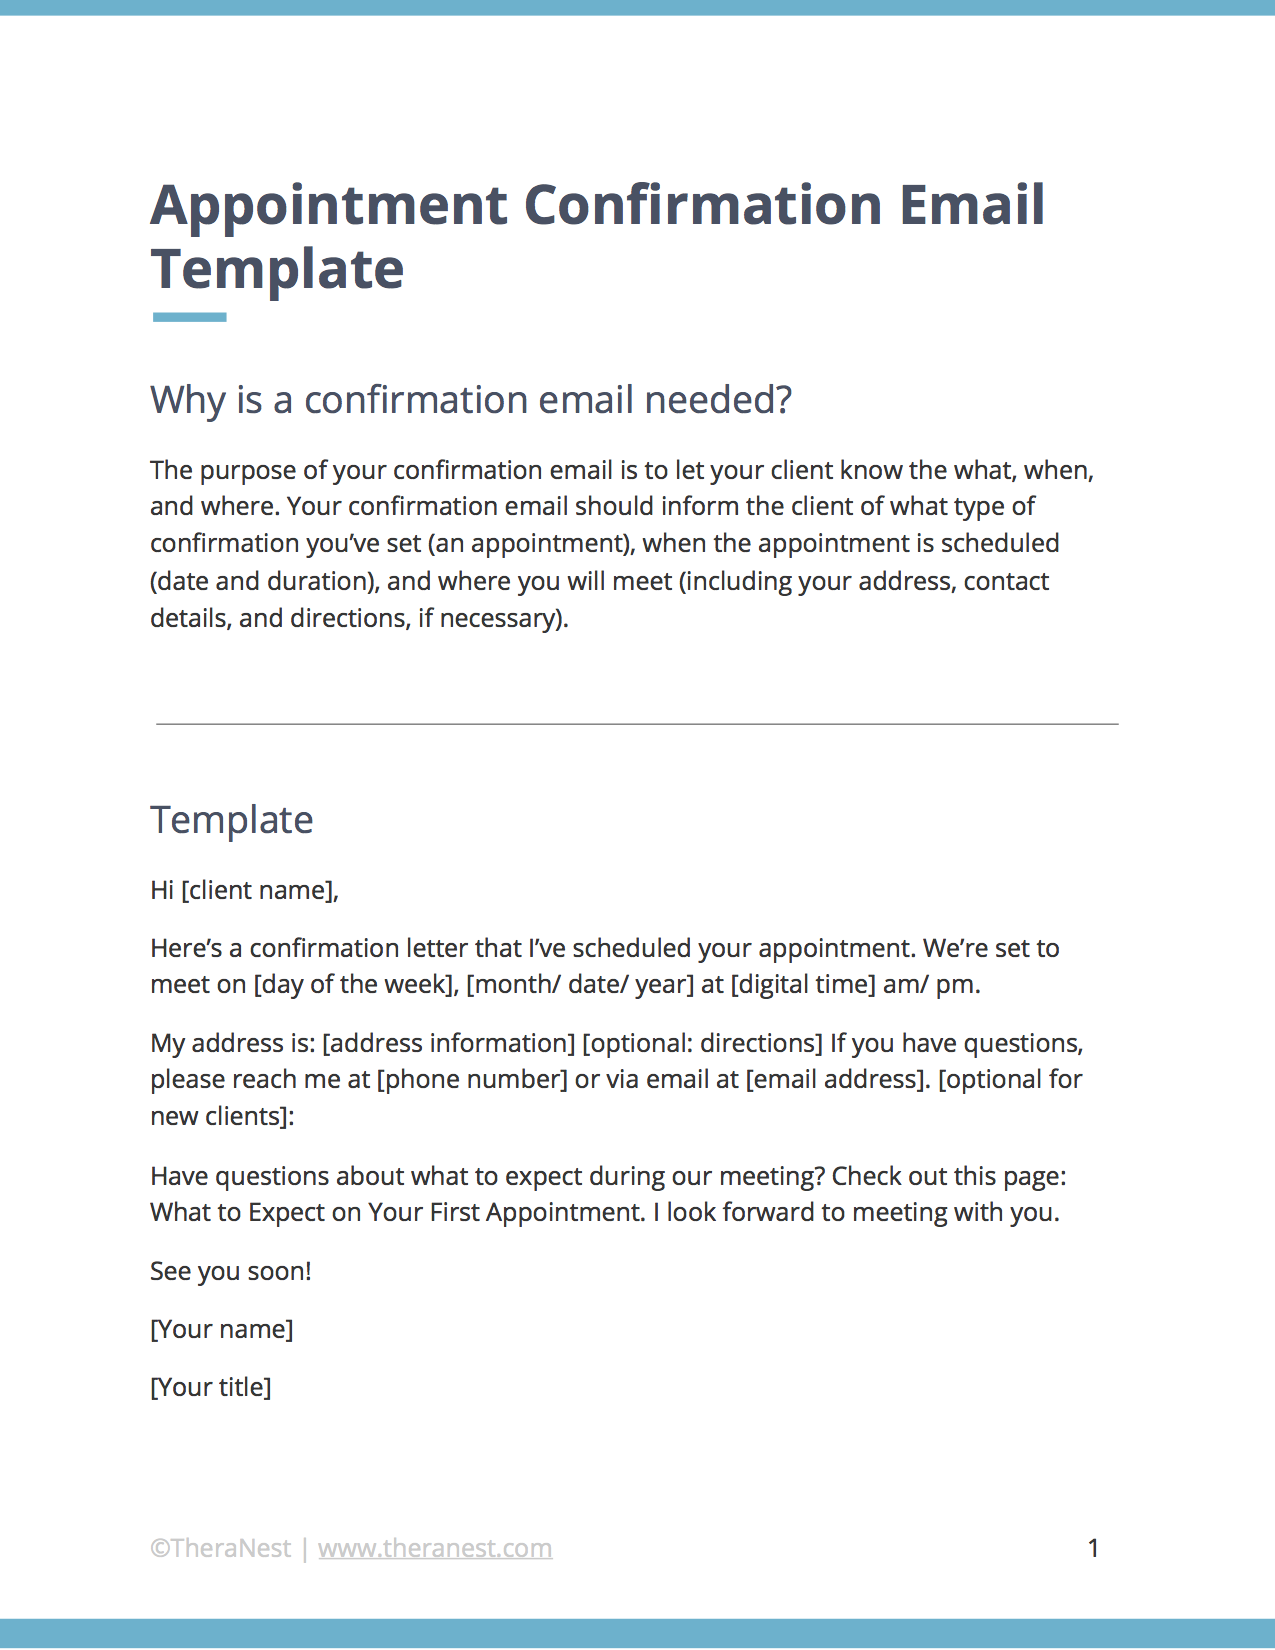 dating-site-first-email-template